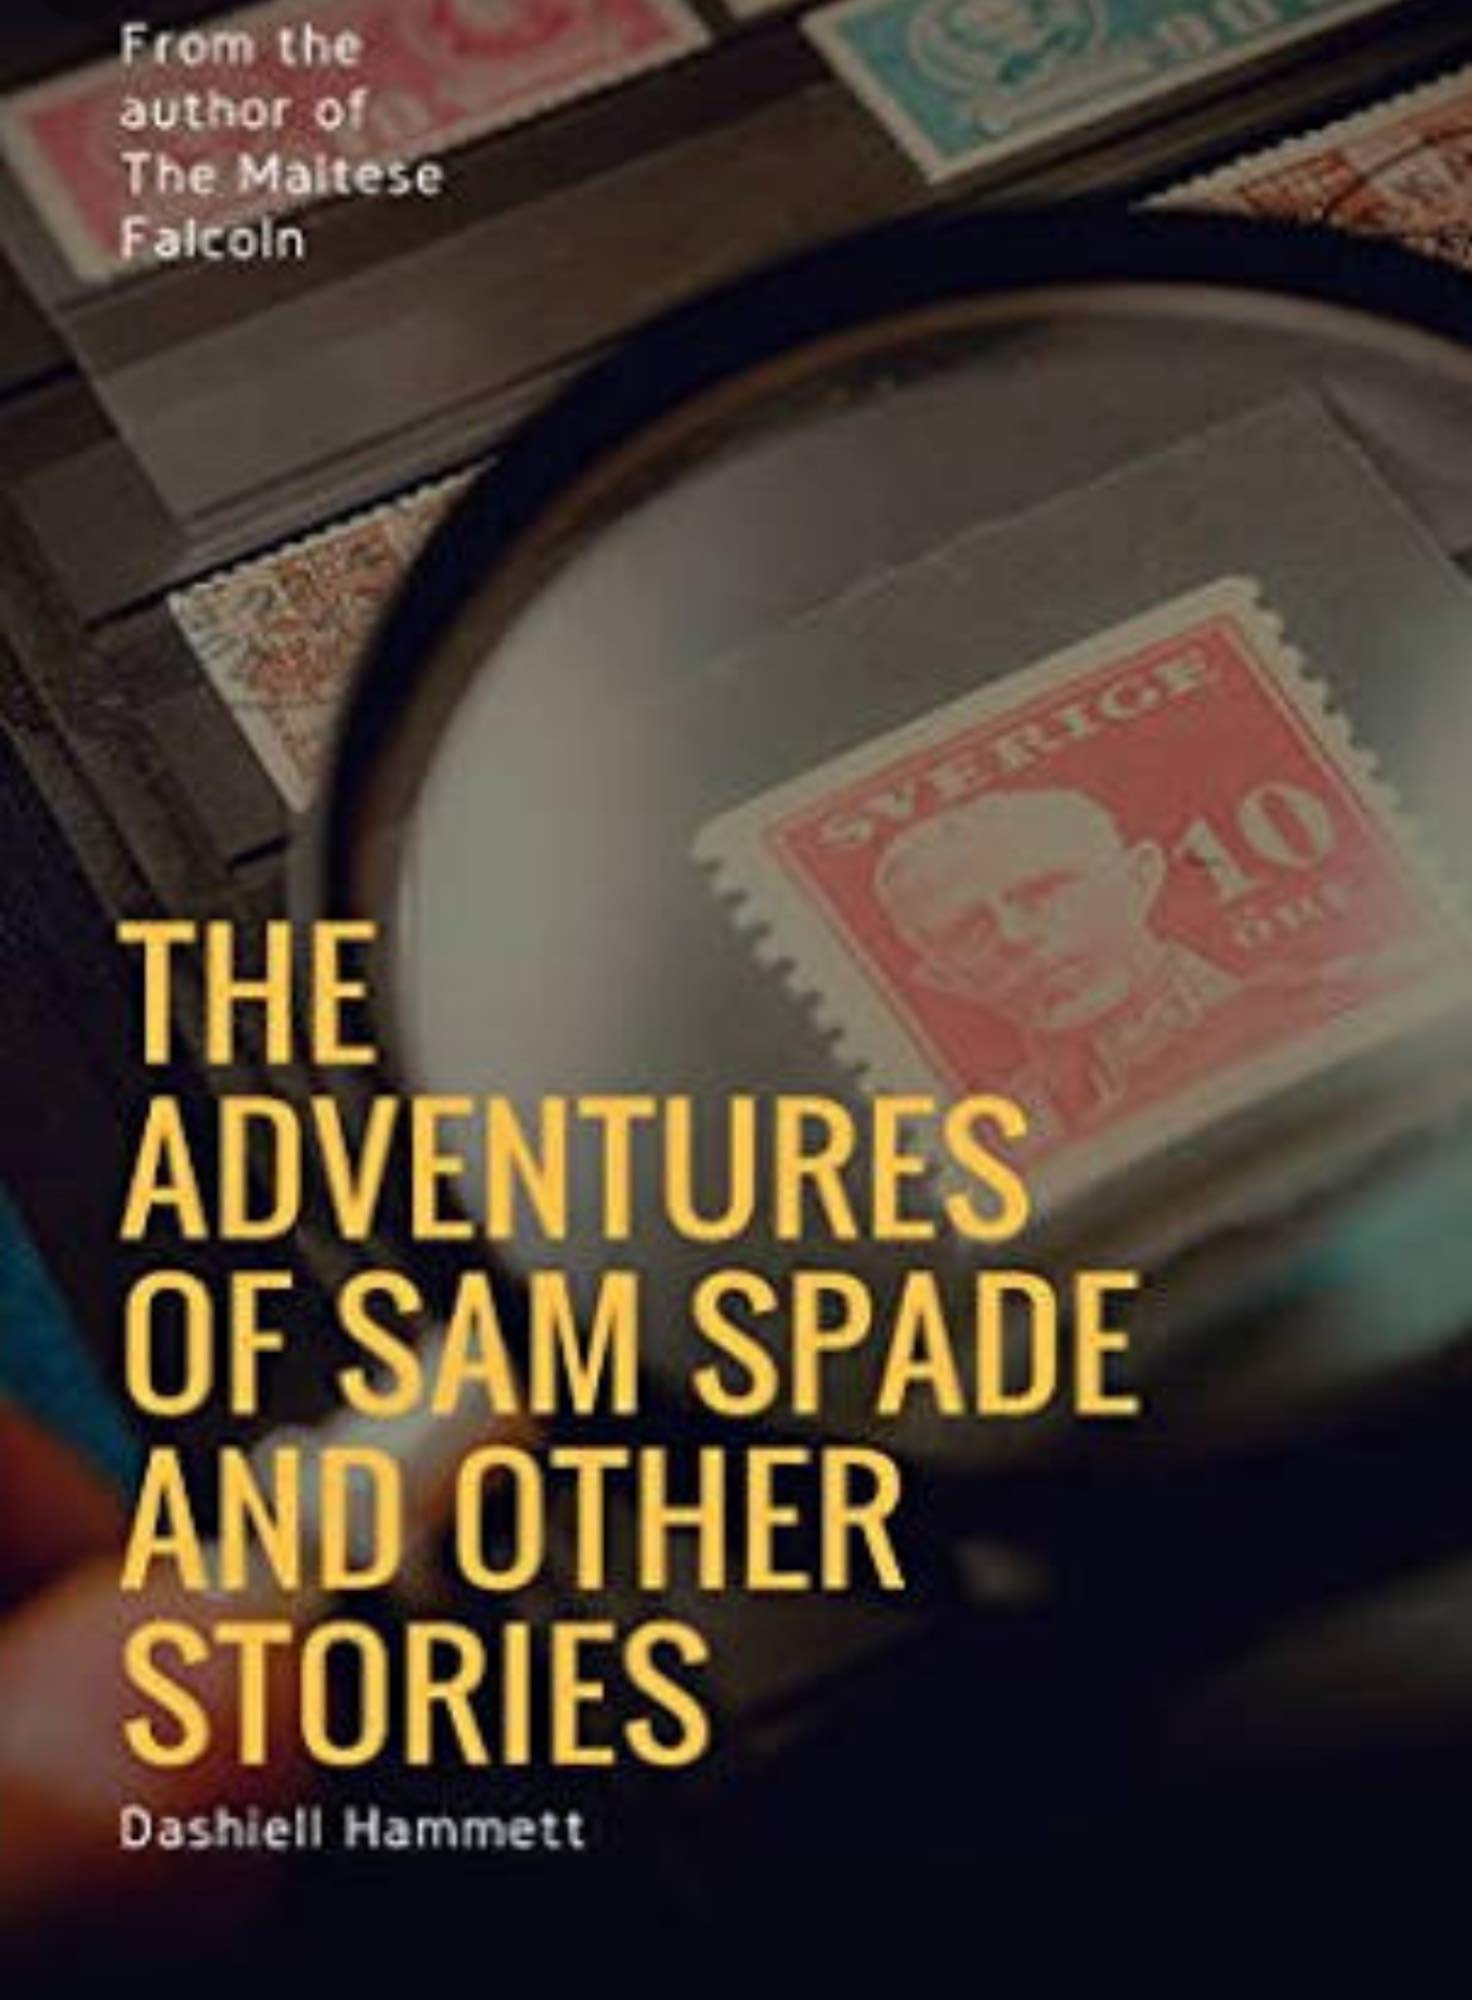 The Adventures of Sam Spade and other stories: Dashiell Hammett: Pages-80